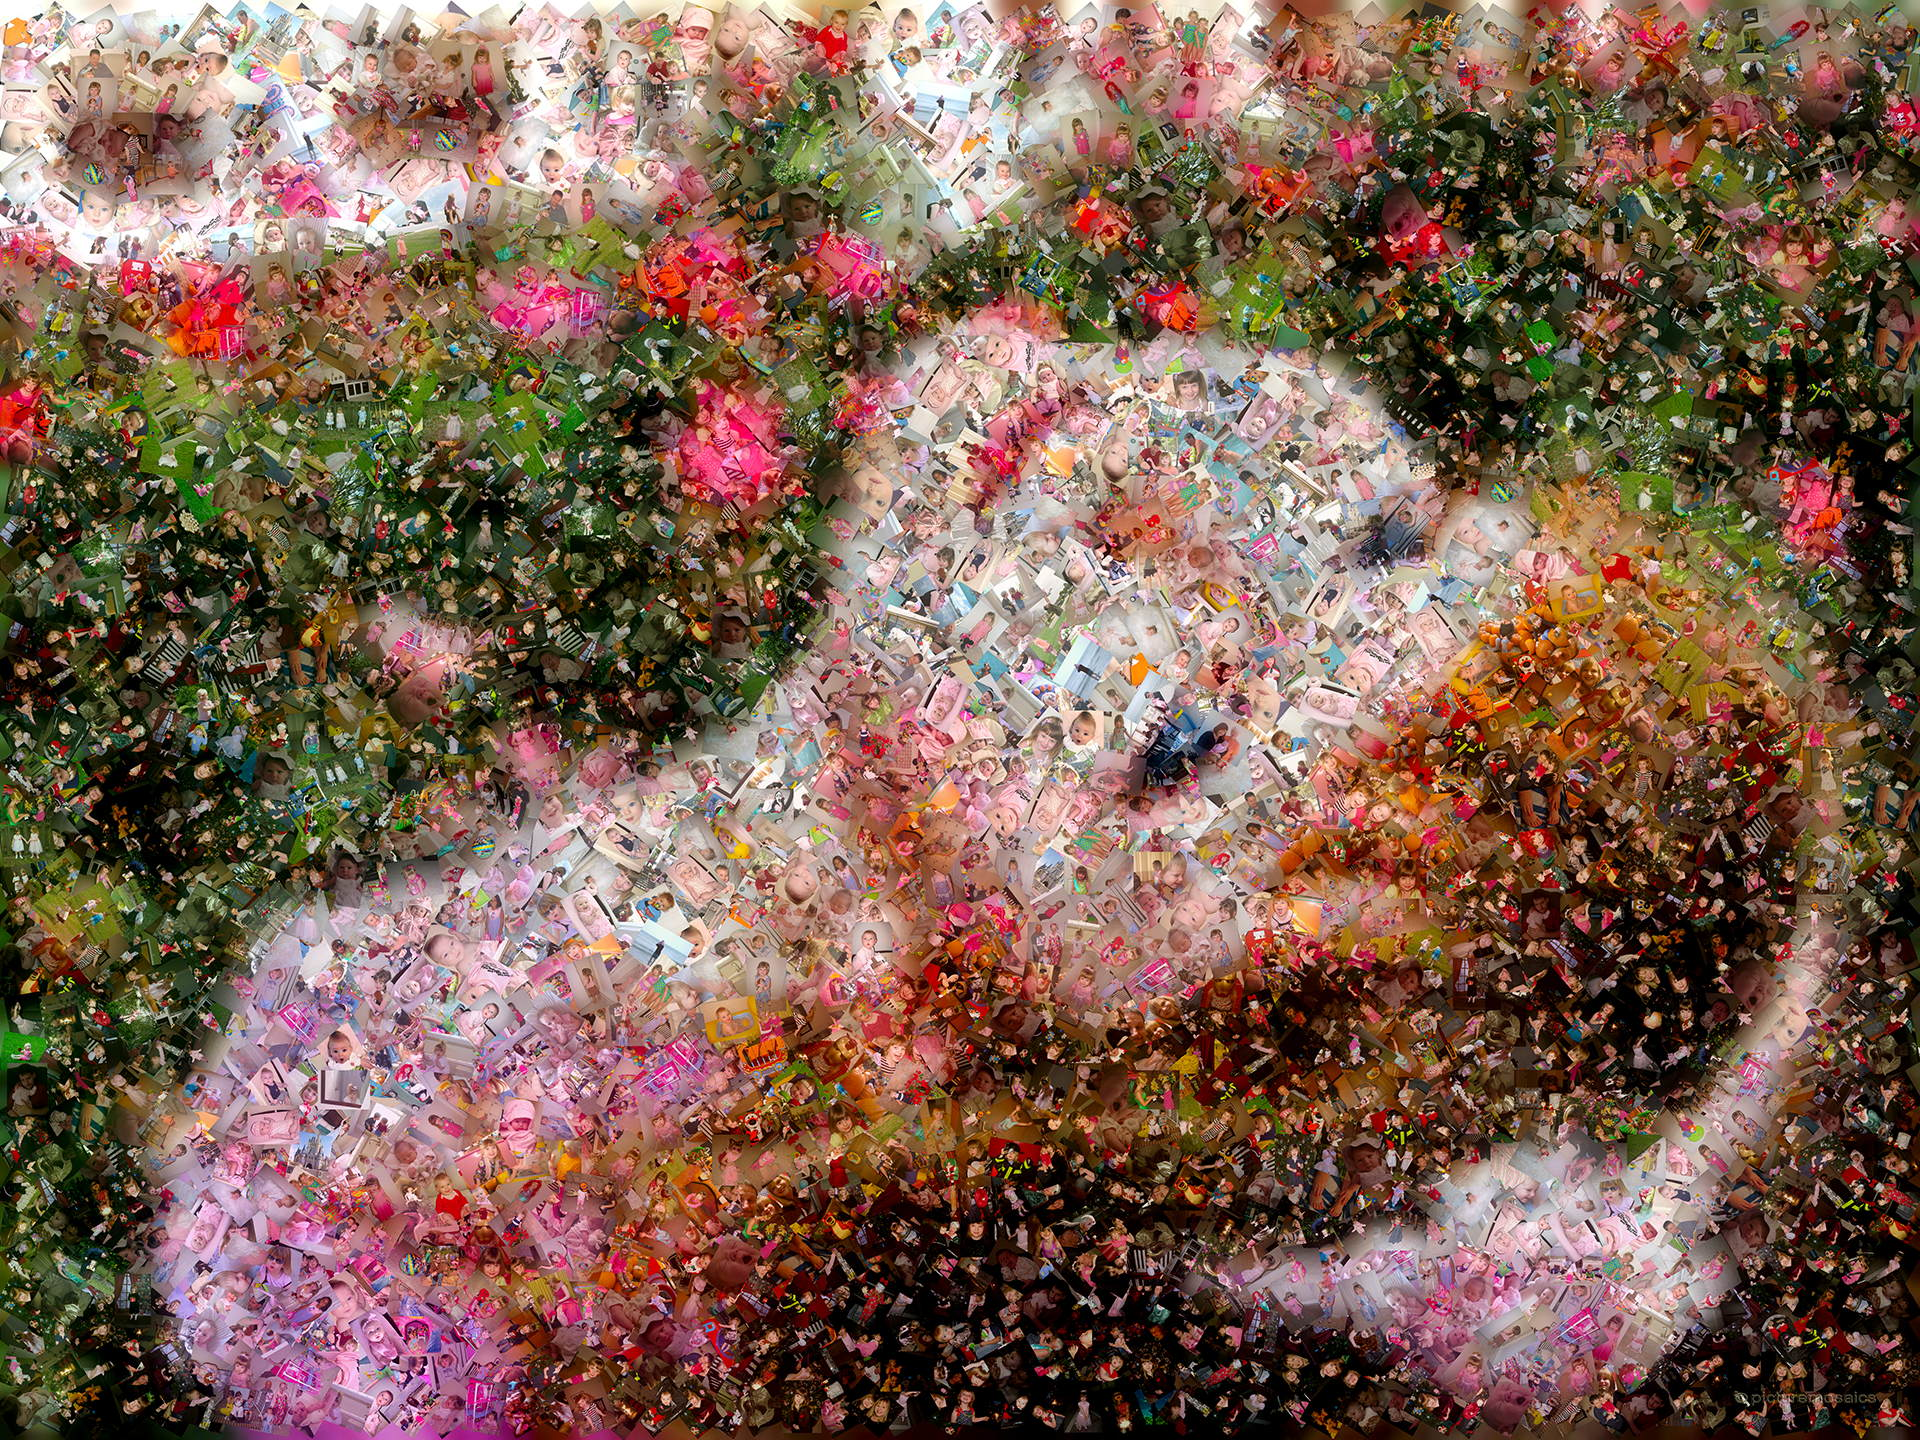 photo mosaic created using 926 customer selected photos